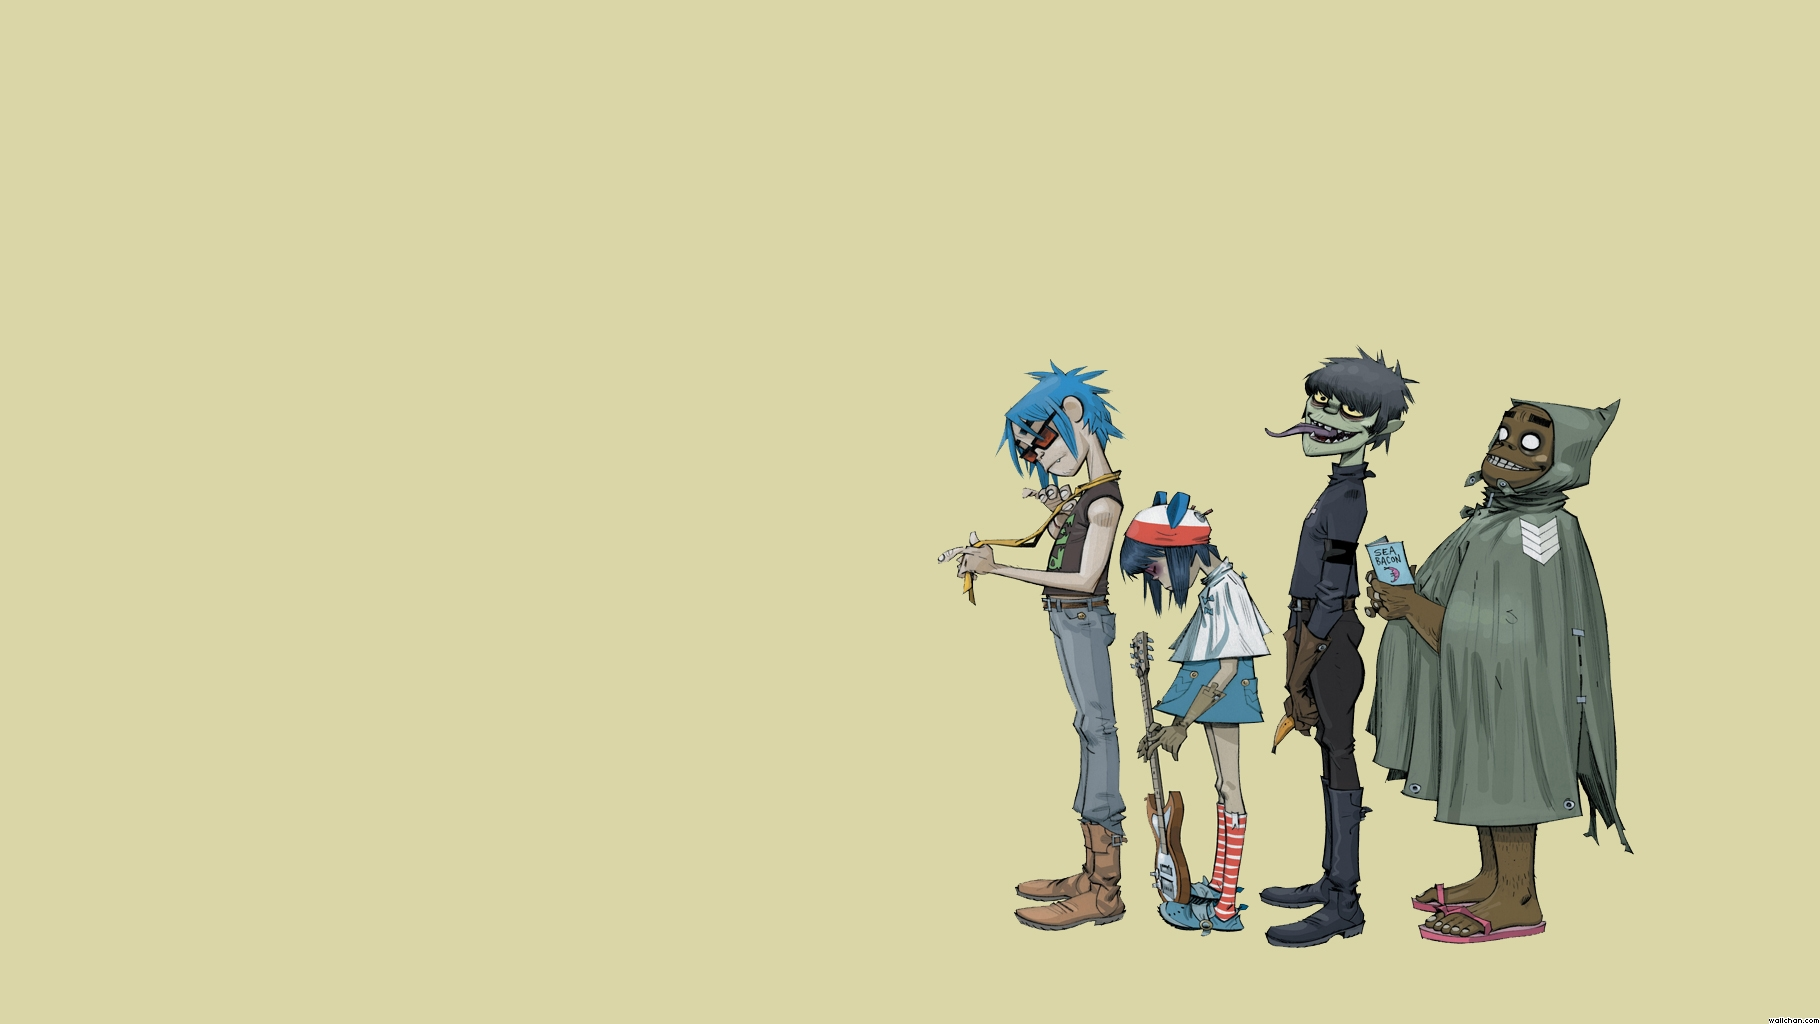 76 Gorillaz Wallpaper On Wallpapersafari